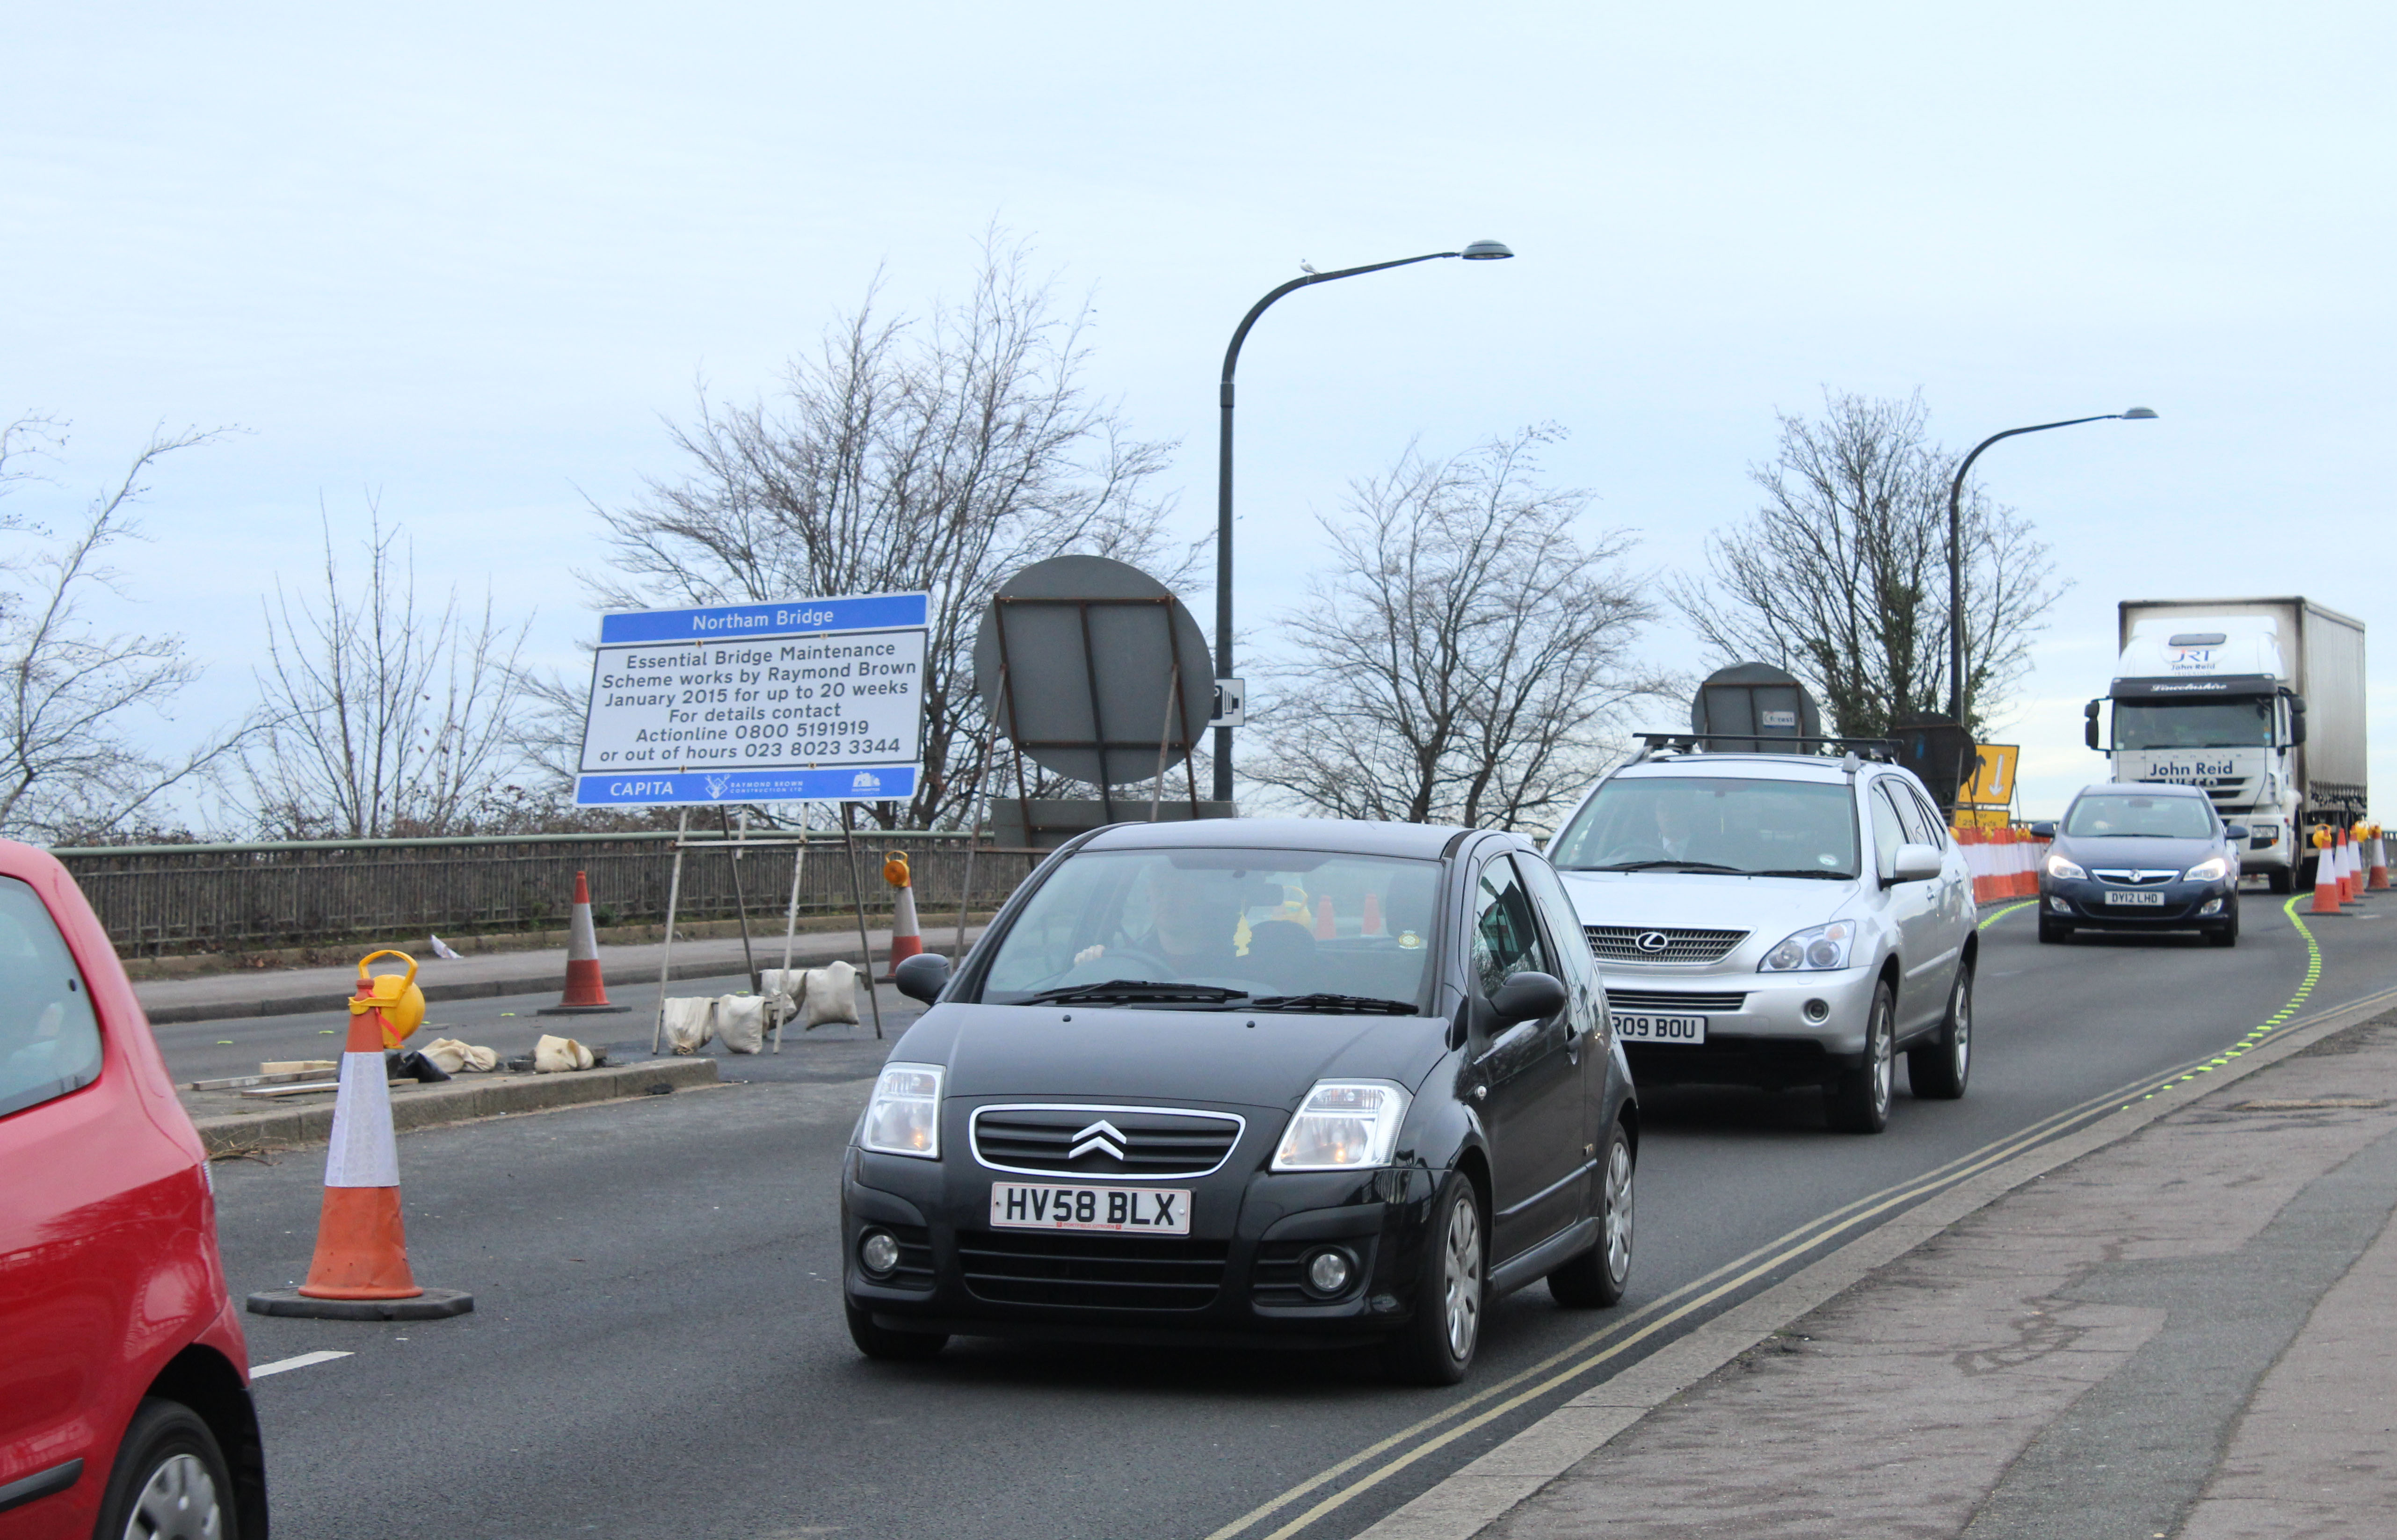 Southampton named amongst most congested cities in the UK